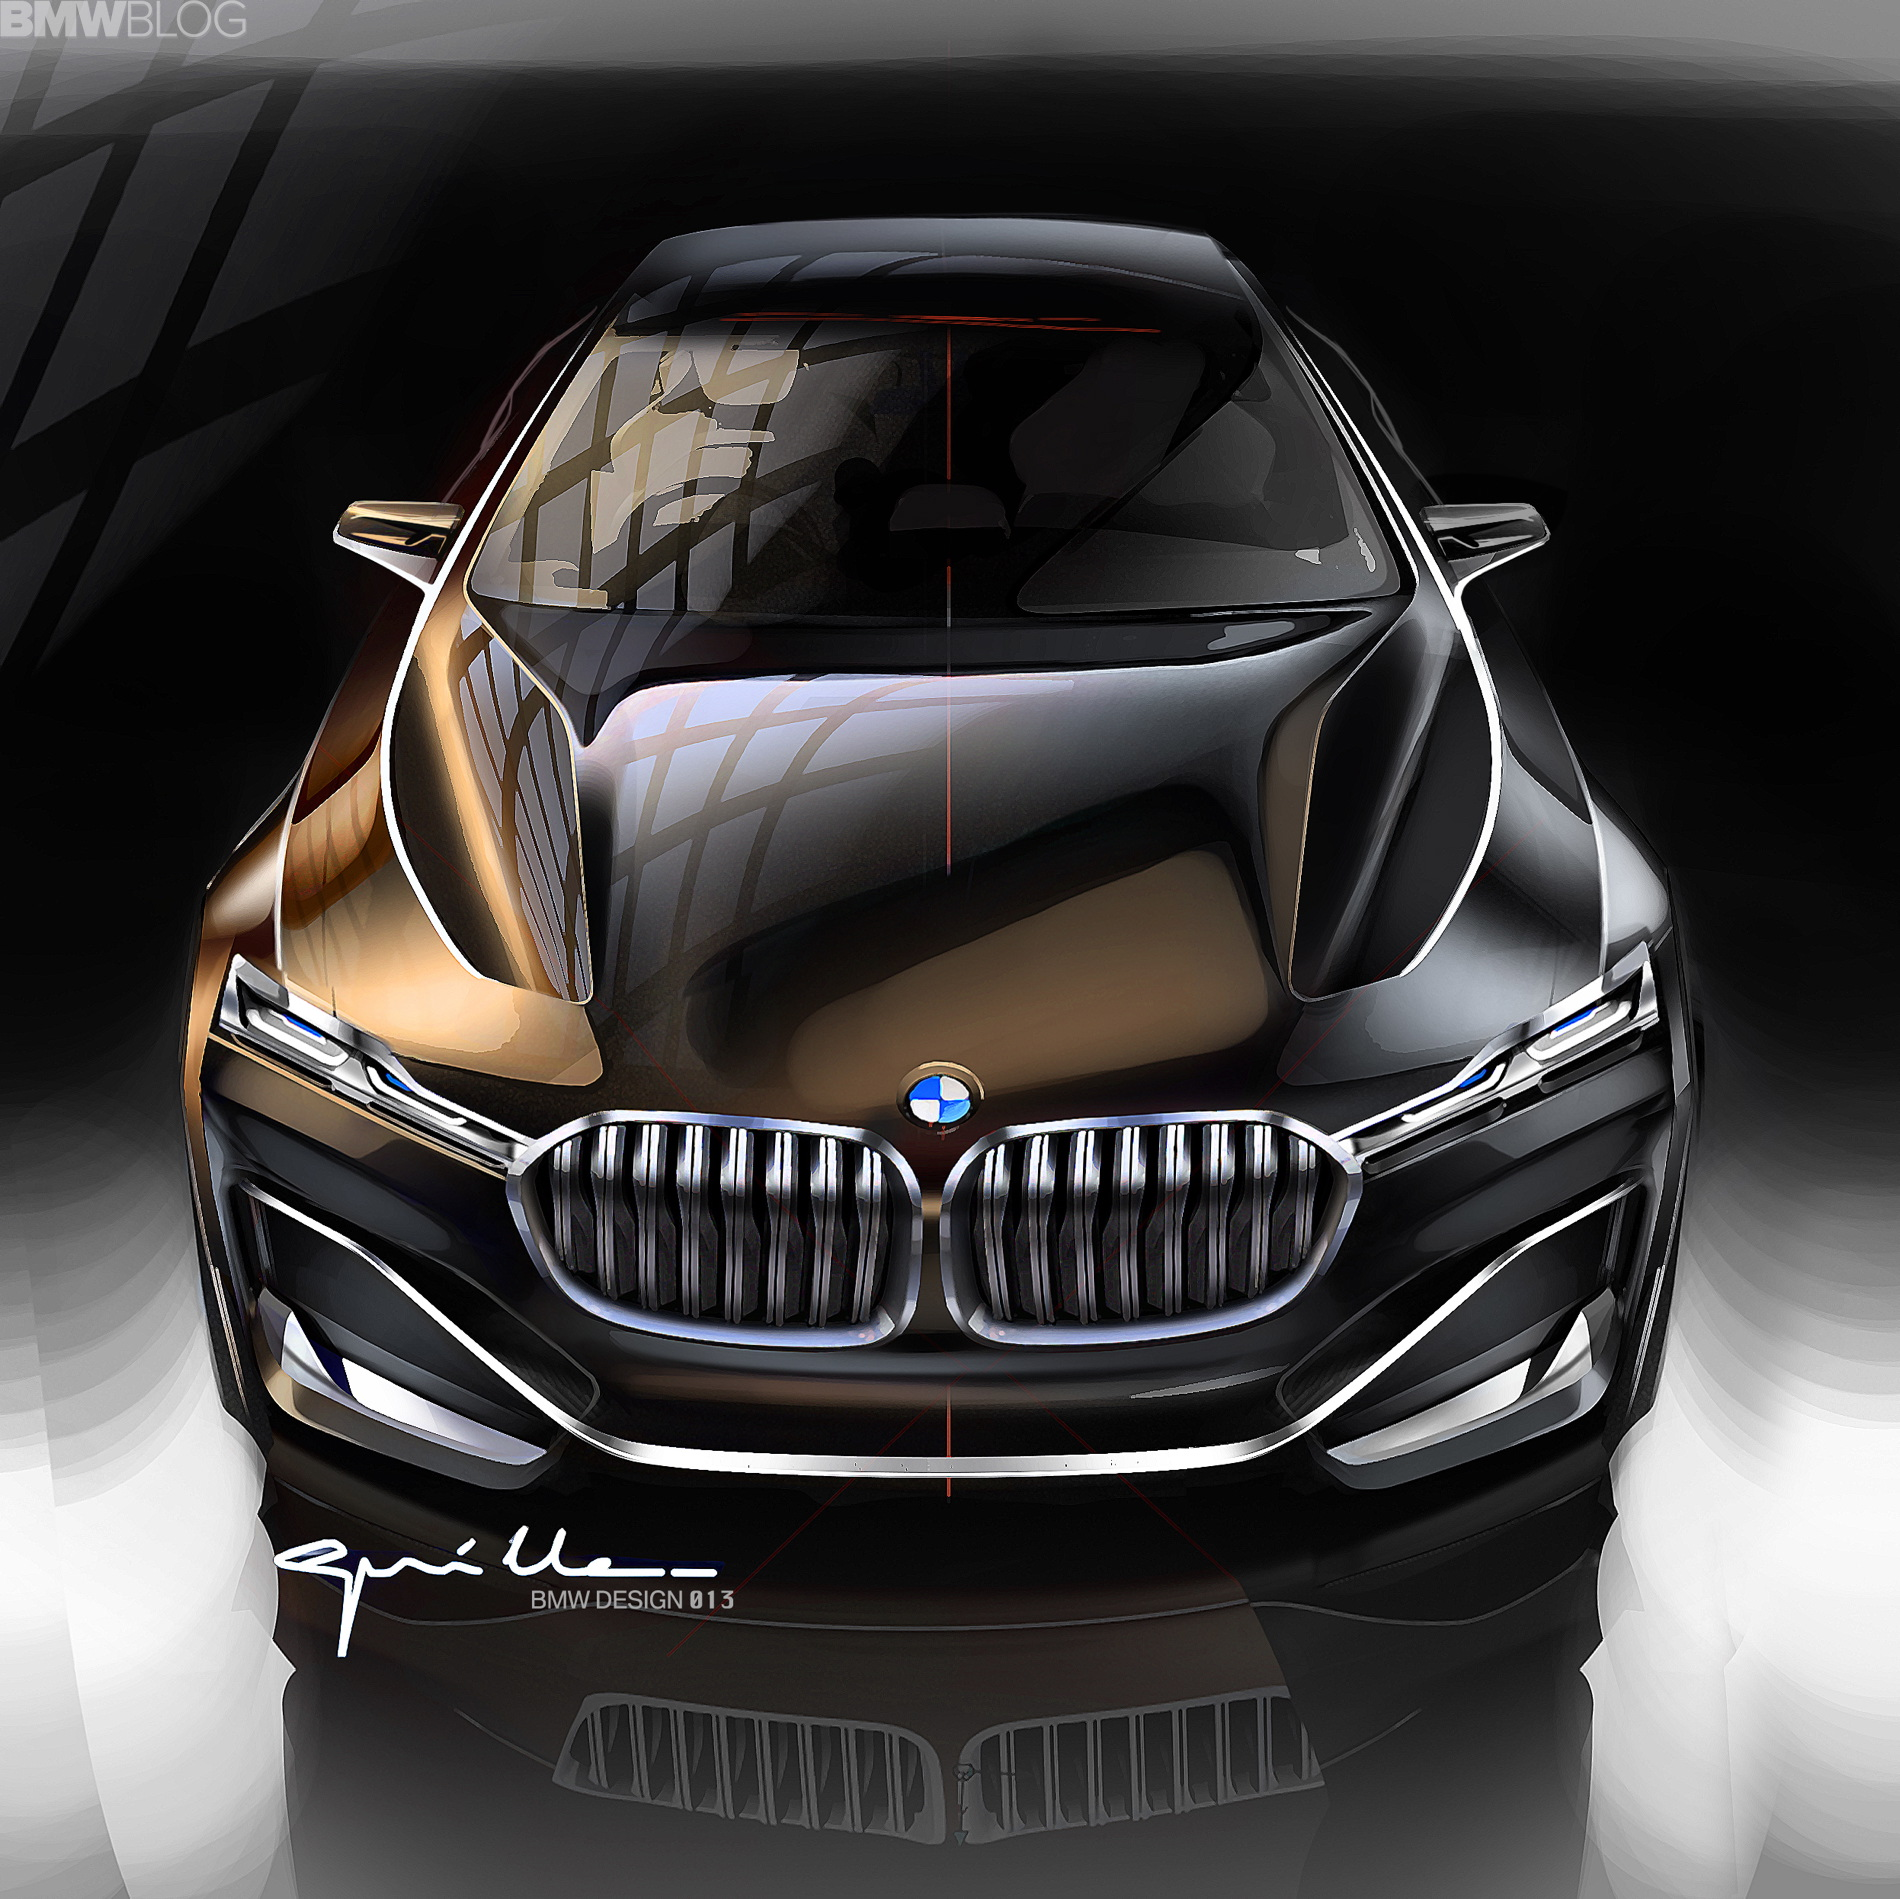 Limousine Car Wallpaper Bmw Rumored To Greenlight The 9 Series Coupe Positioned